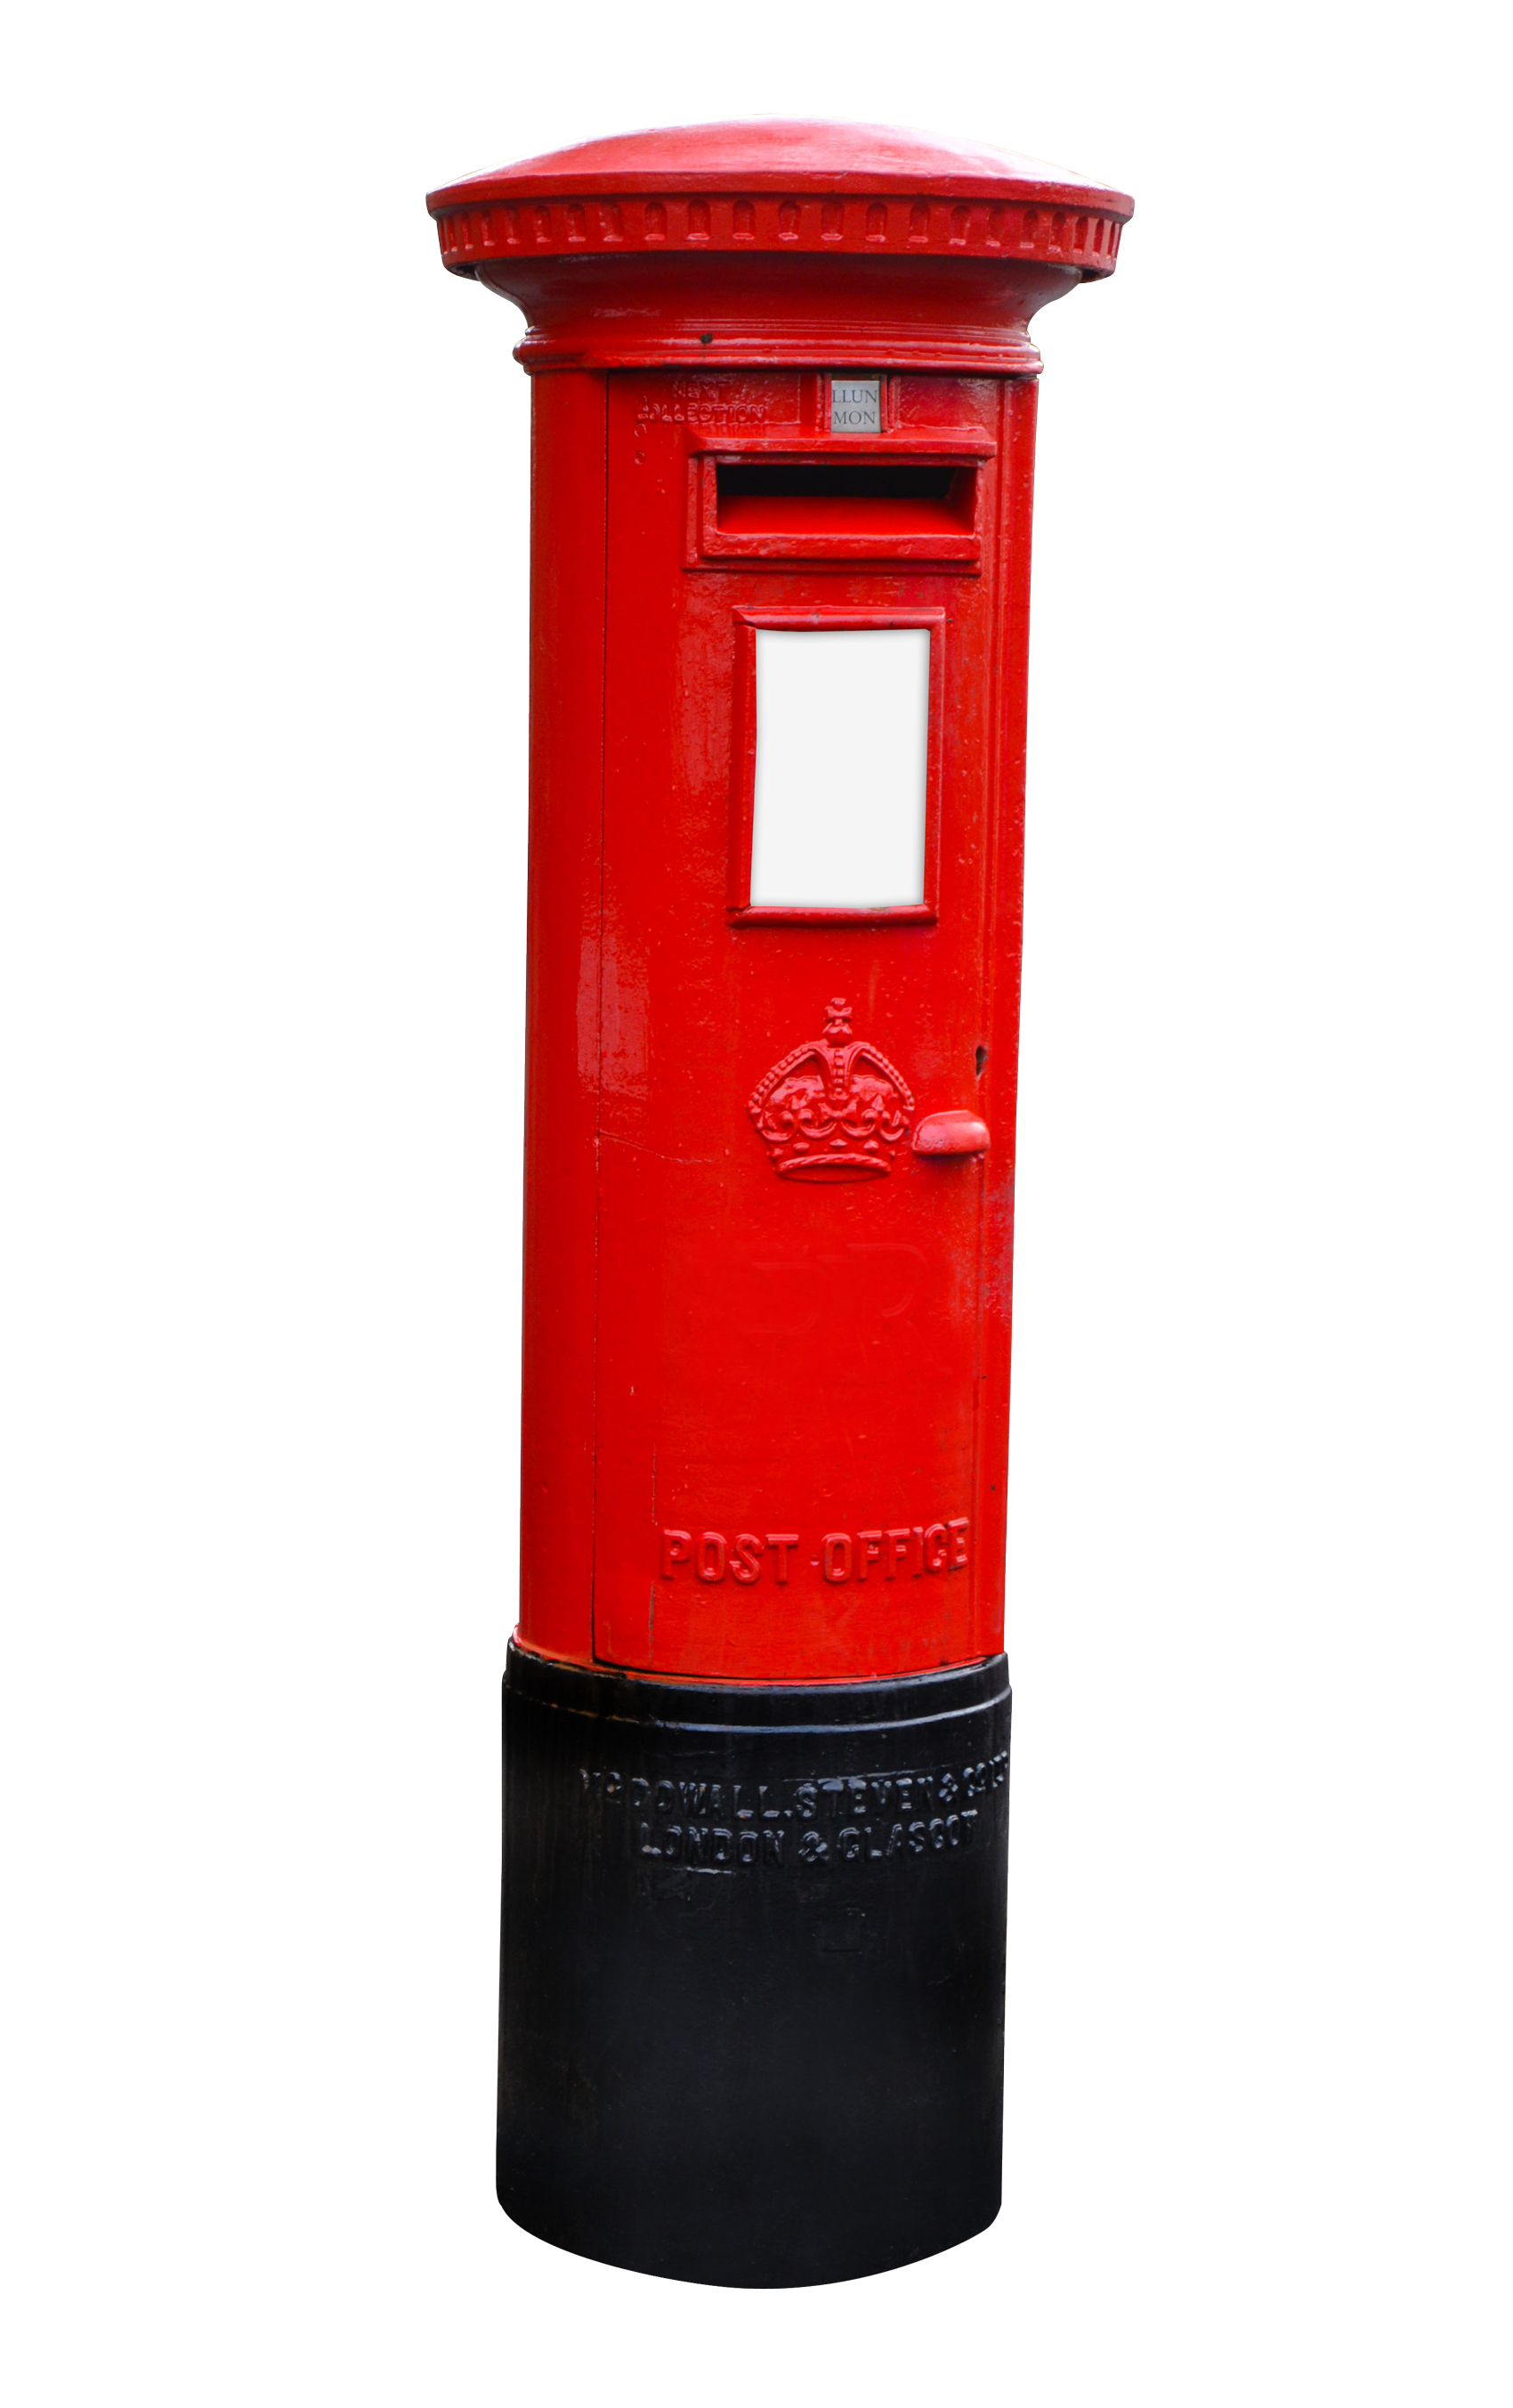 Mailbox vintage png. Postbox images free download